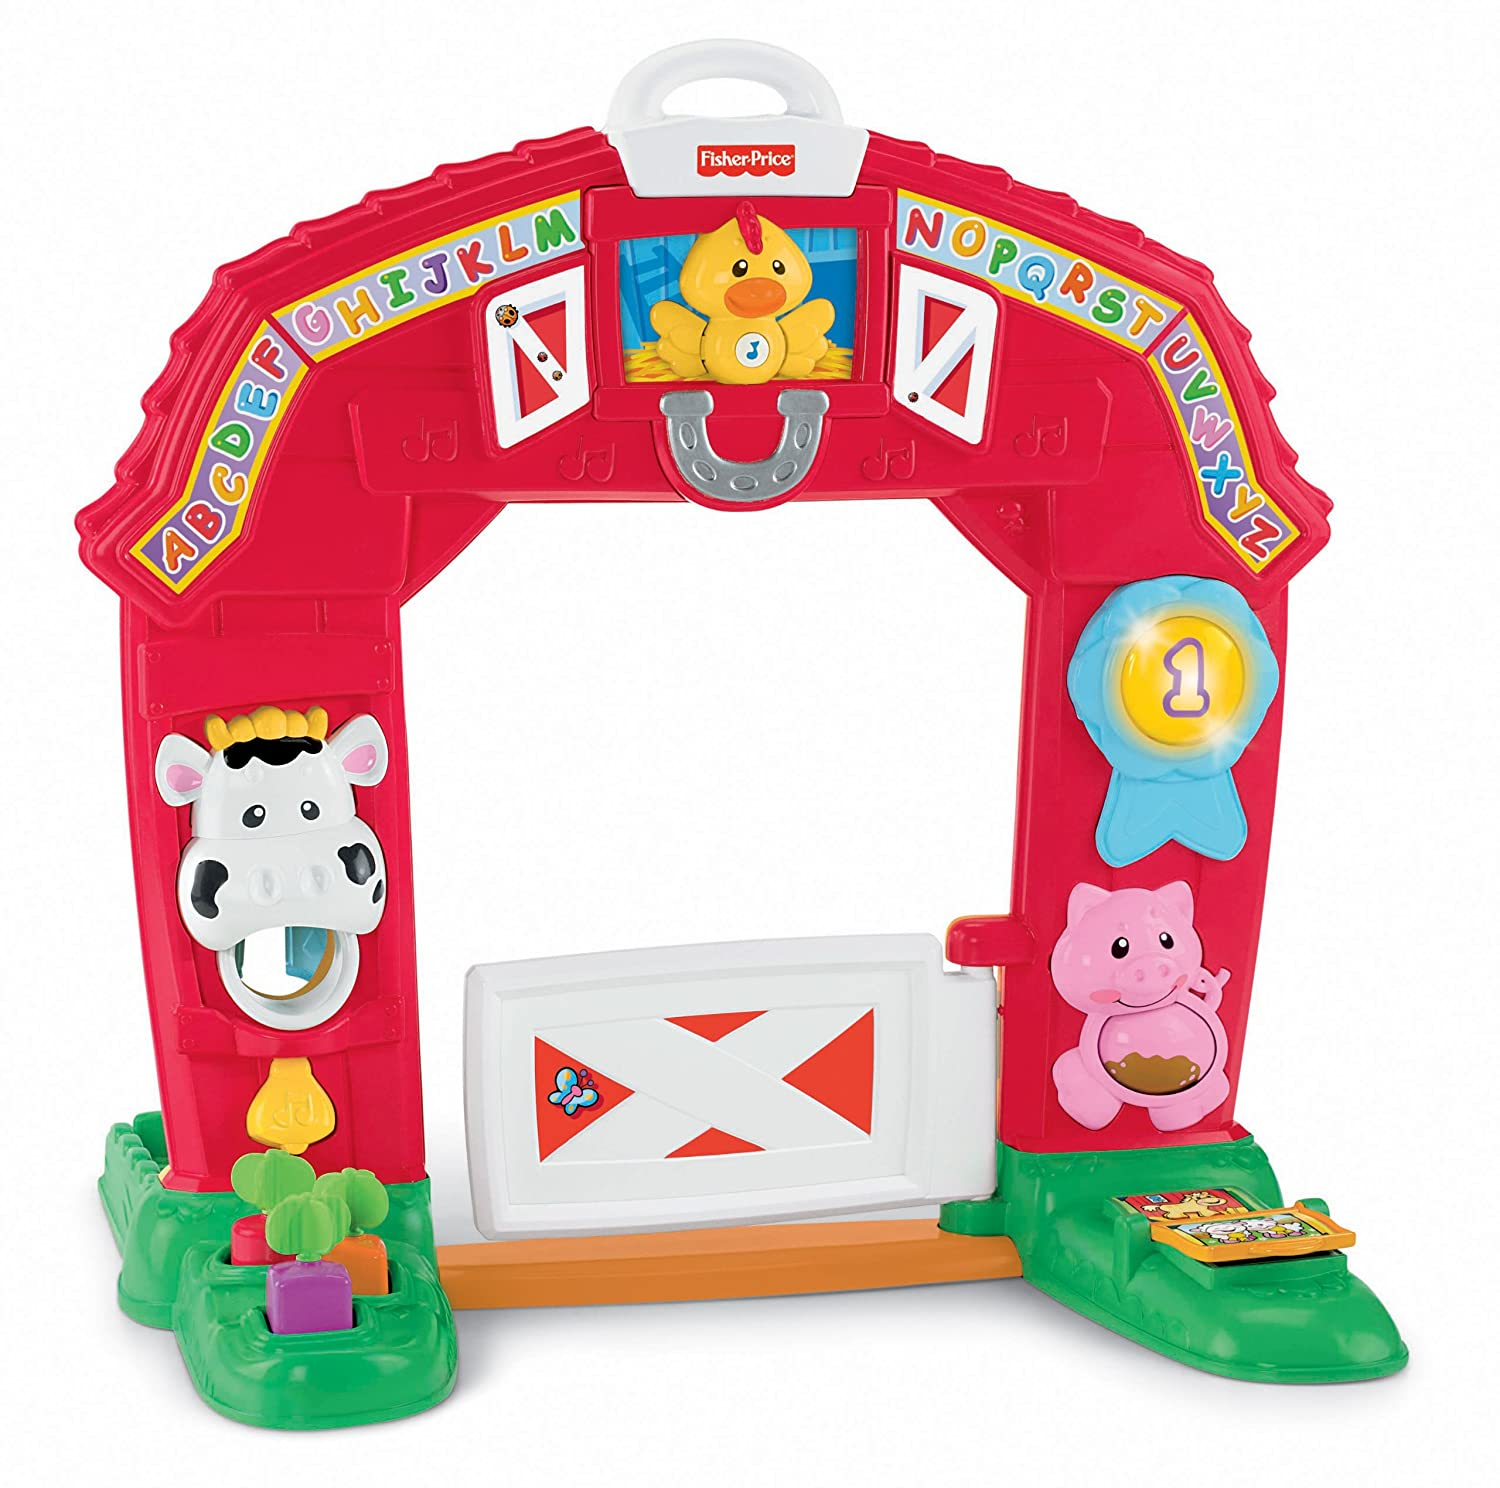 Amazon.com: Fisher-Price Laugh & Learn Learning Farm: Toys & Games